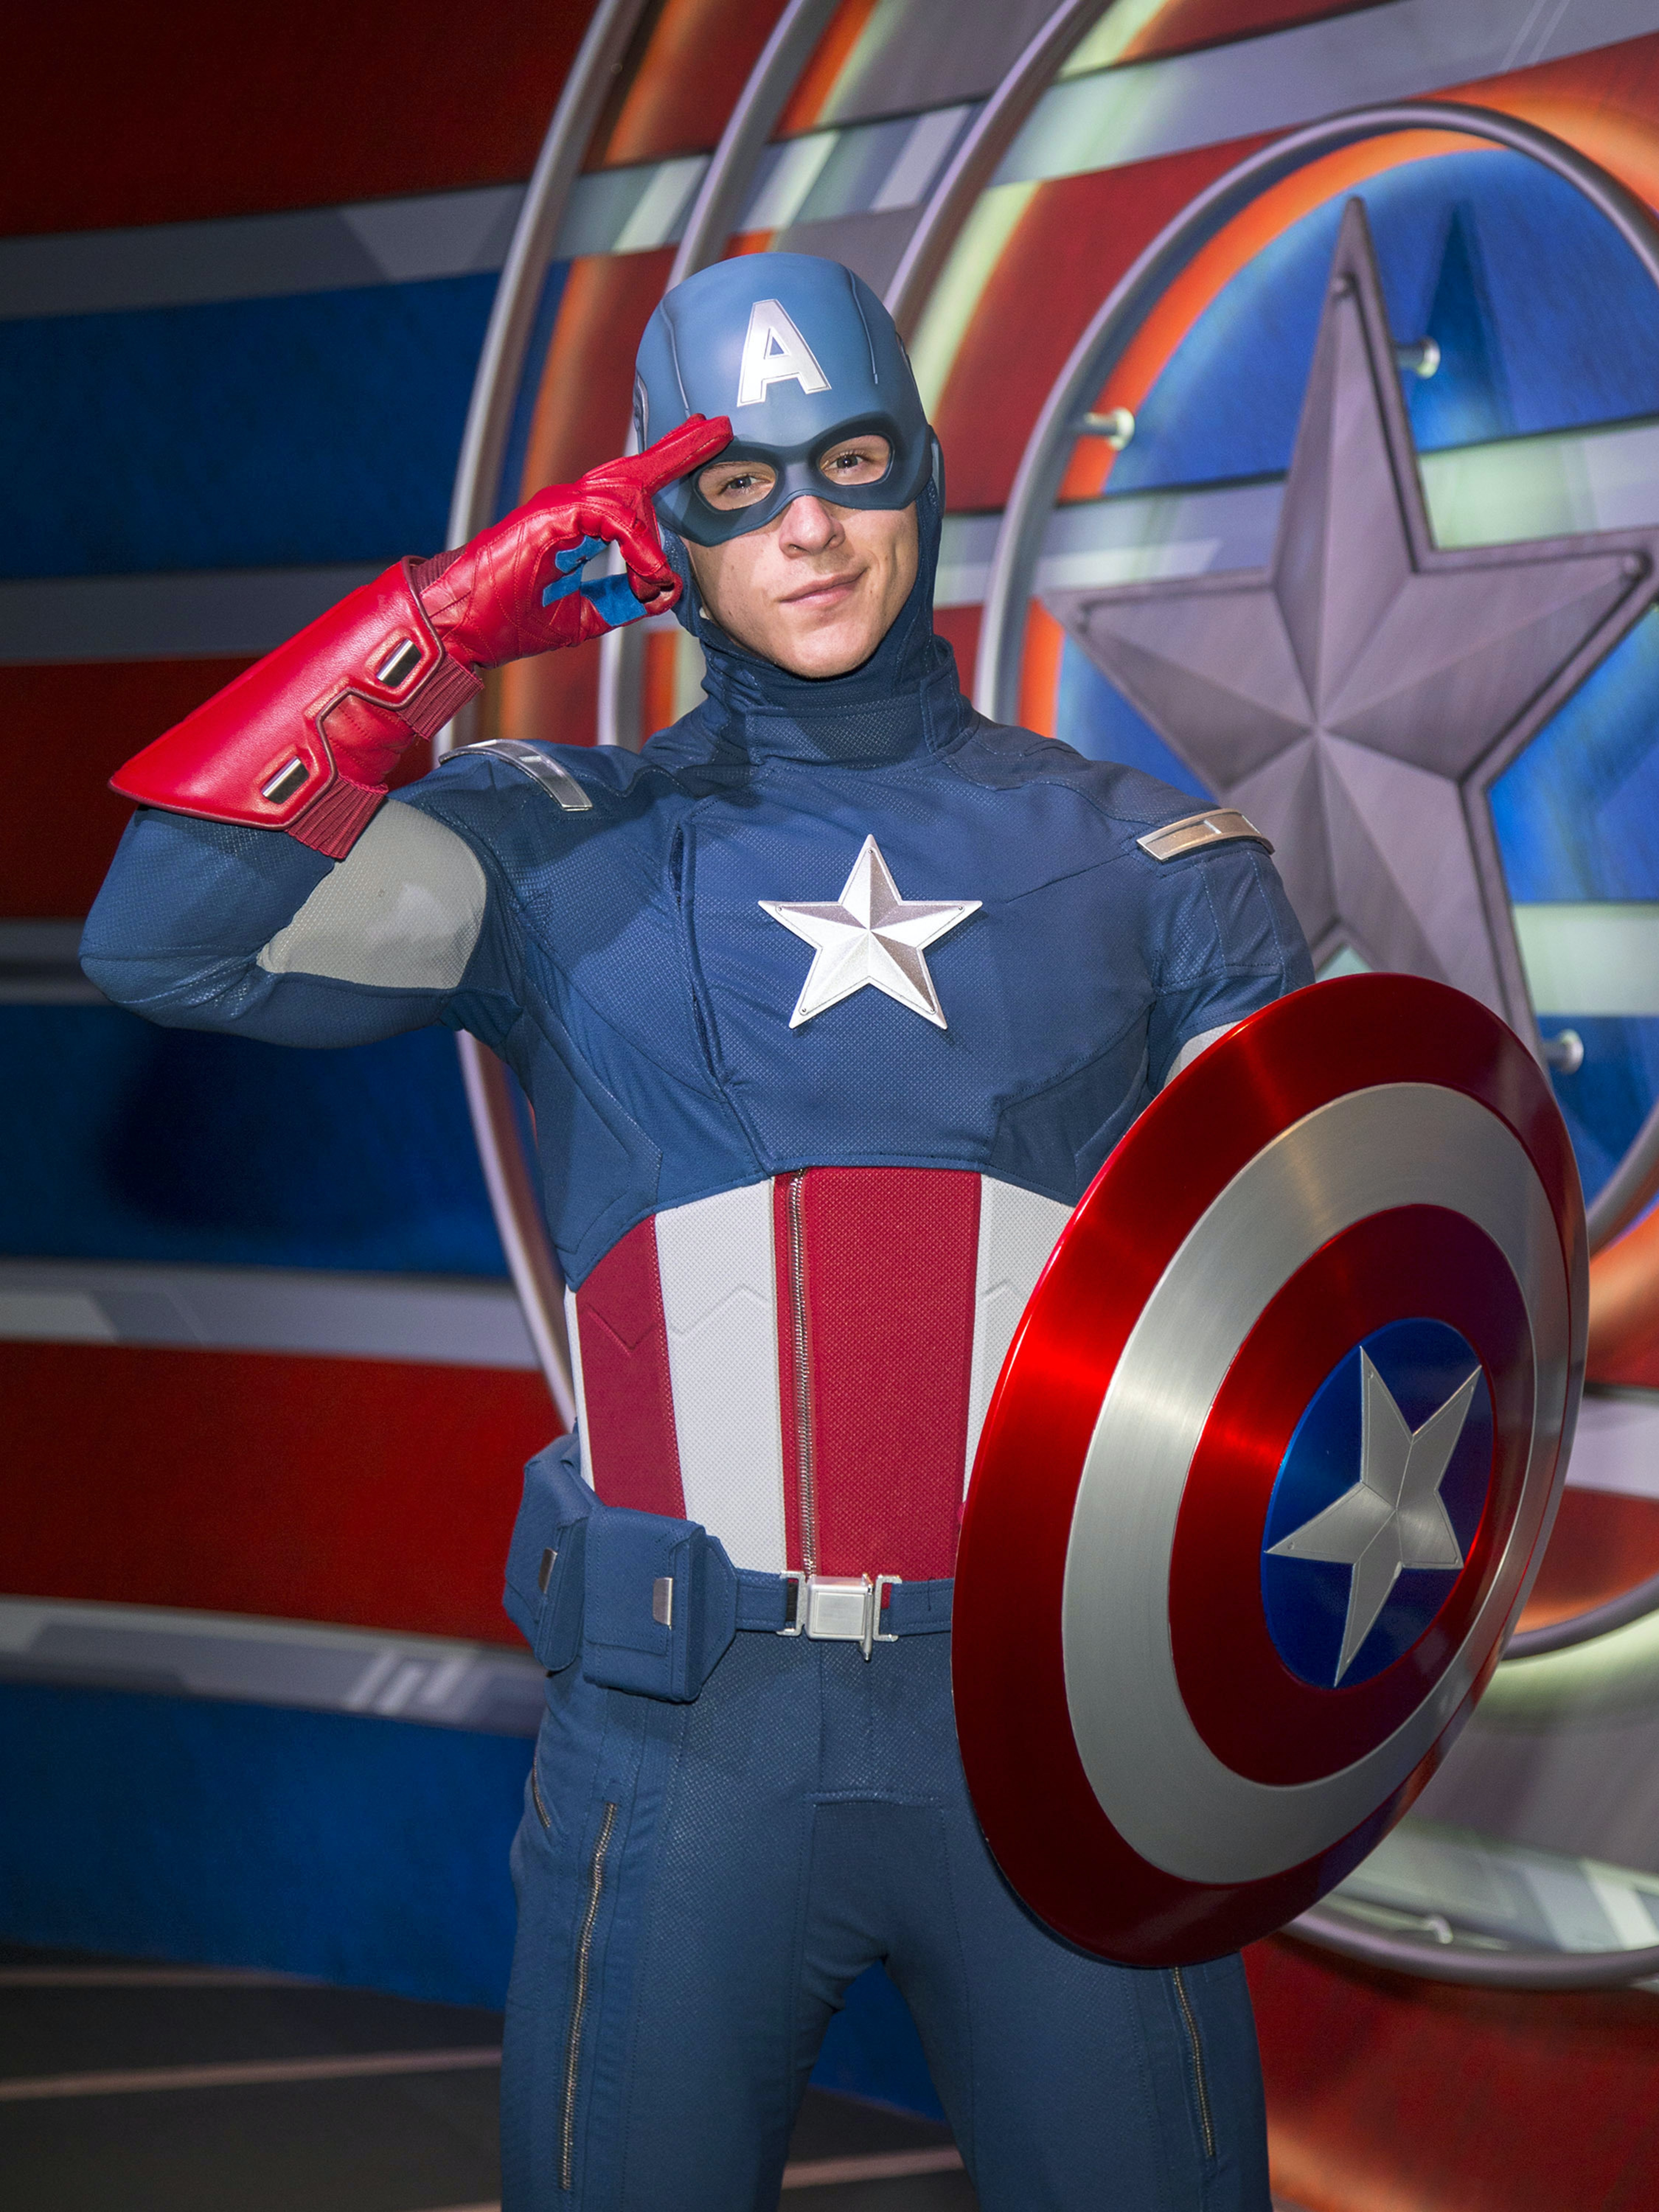 The 10 Most Exciting Marvel Disneyland Attractions | Inverse